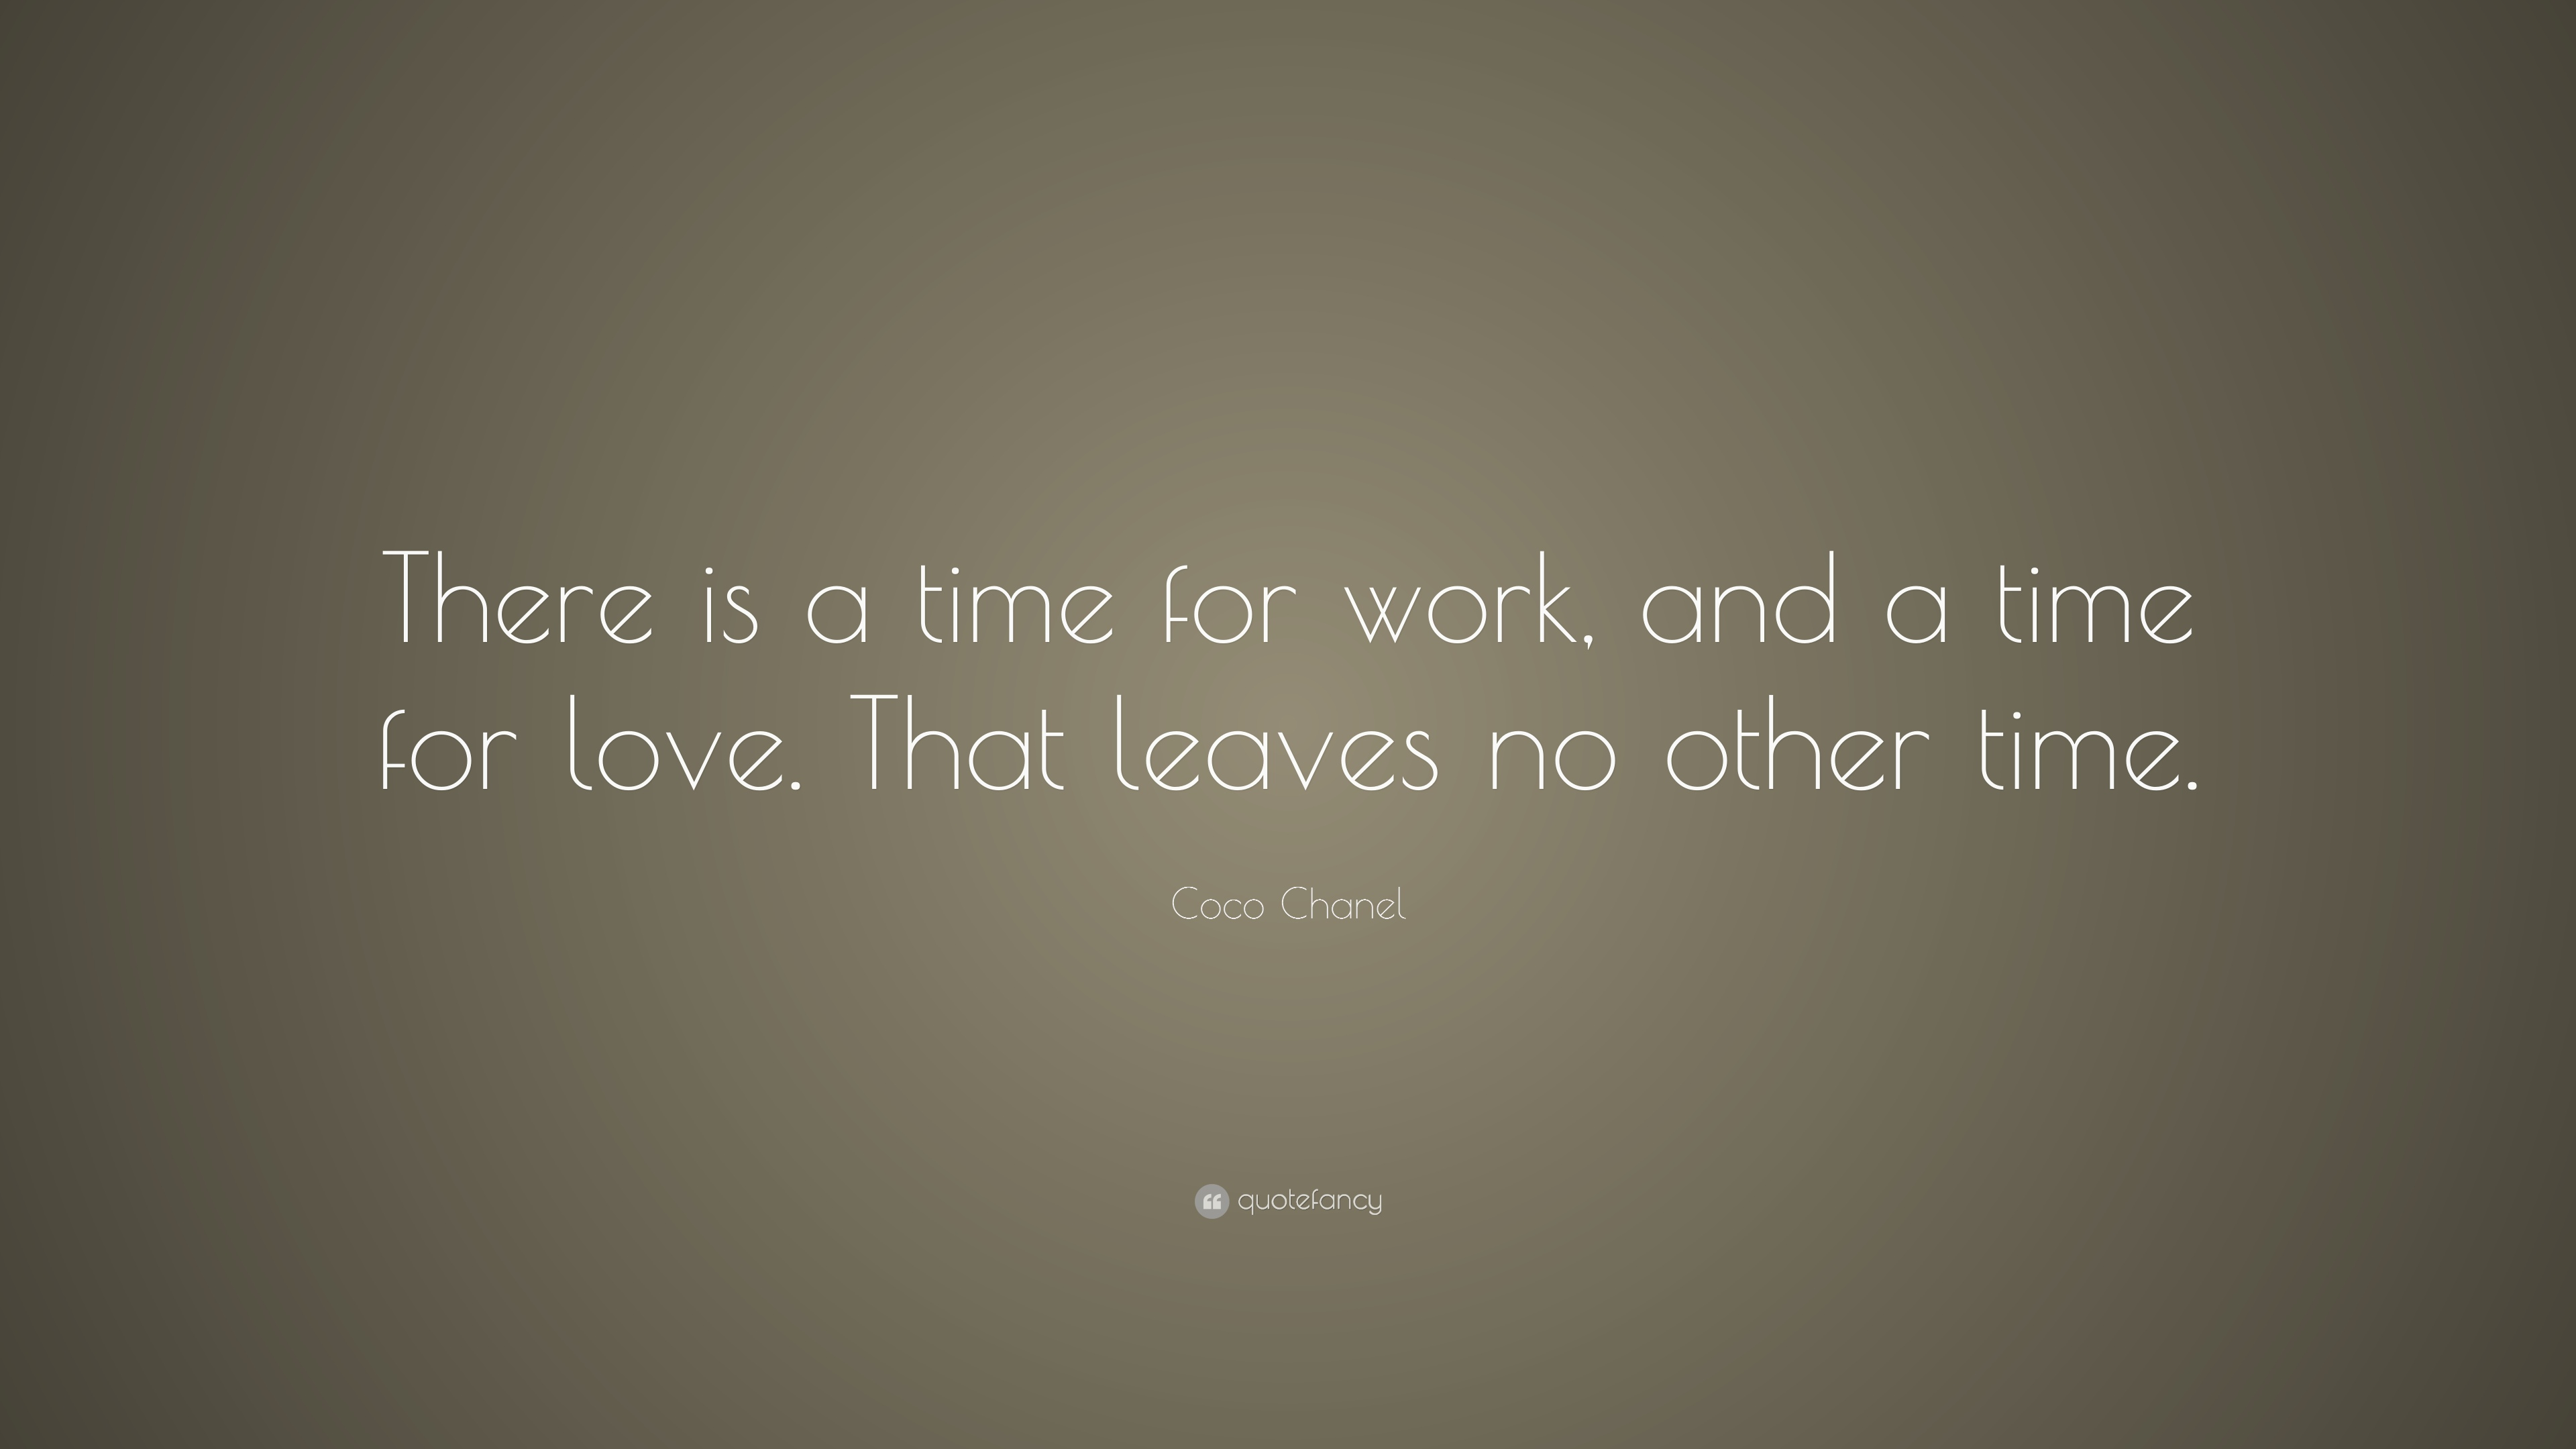 Coco Chanel Quote There Is A Time For Work And A Time For Love